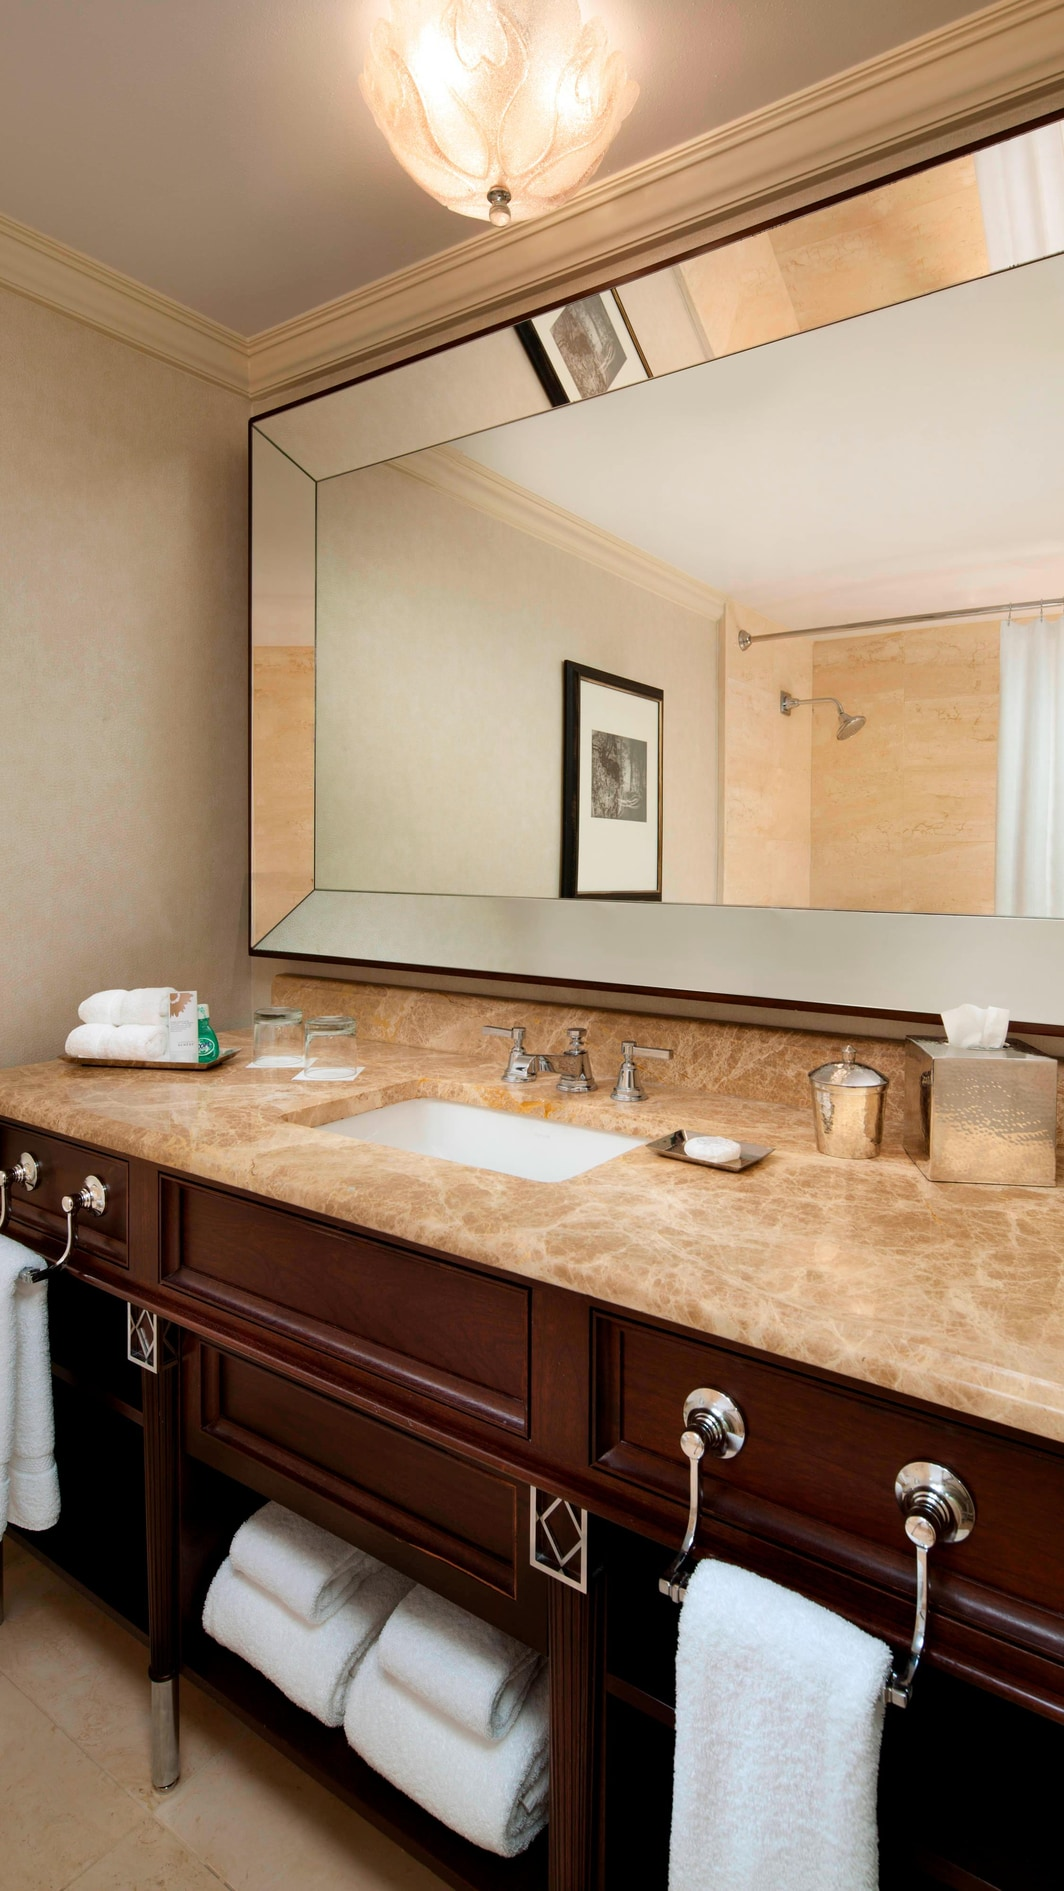 Superior - Deluxe Room Bathroom